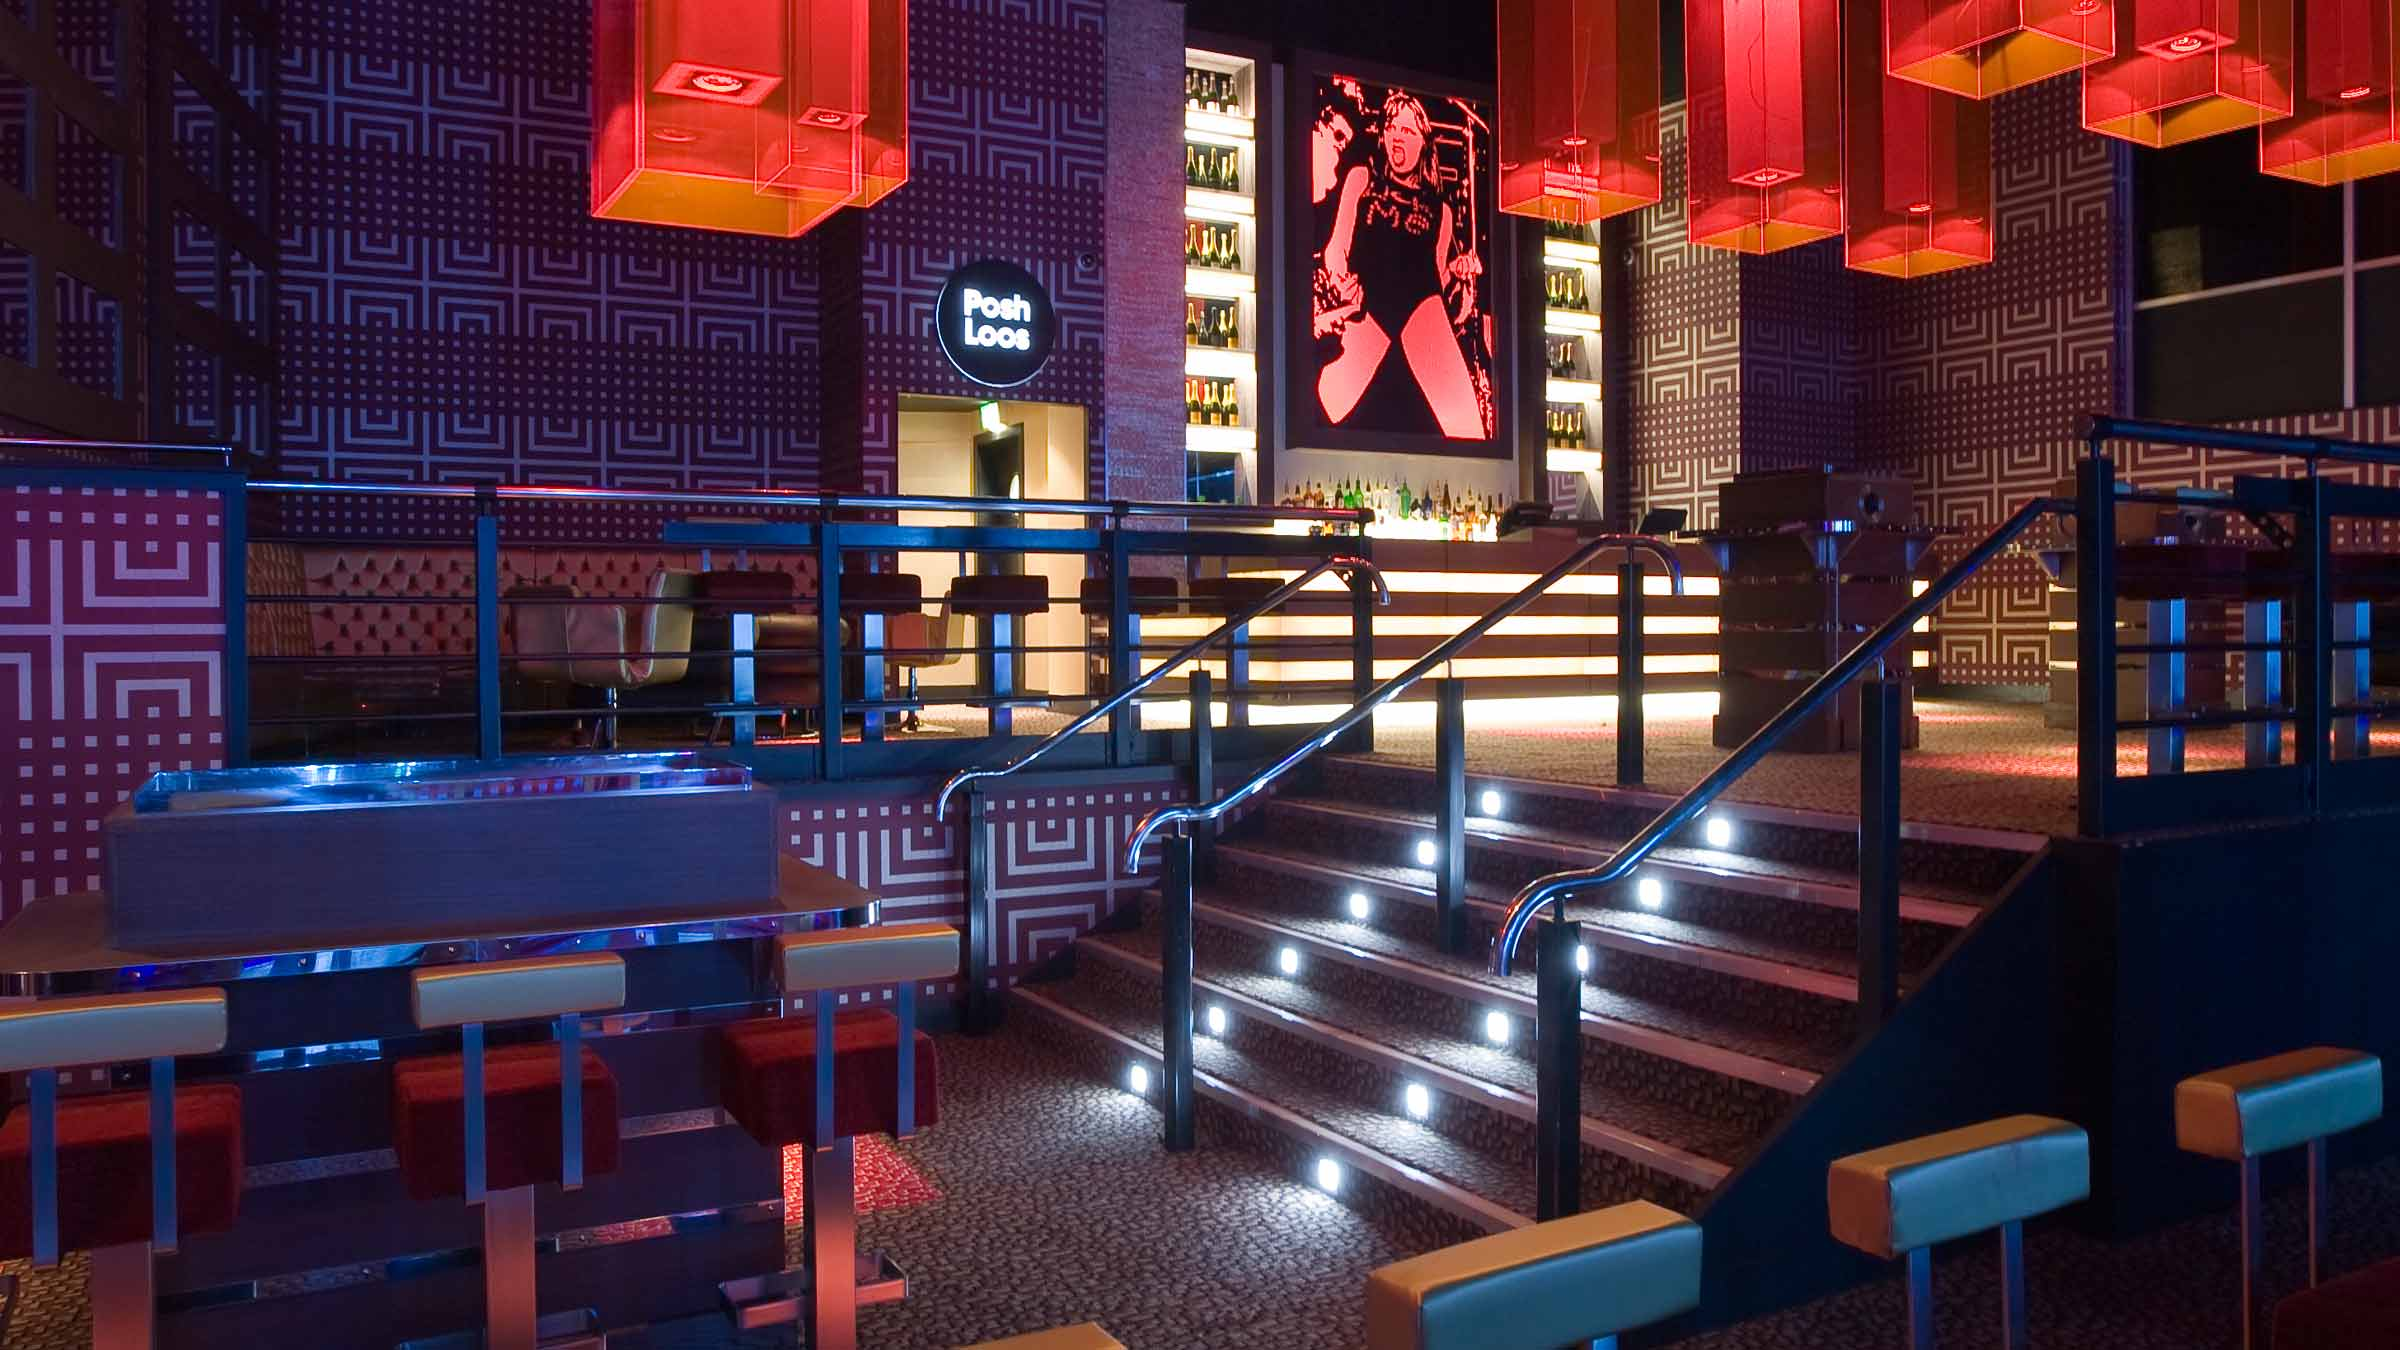 Restaurant Hotel Nightclub Design By Bigtime Design